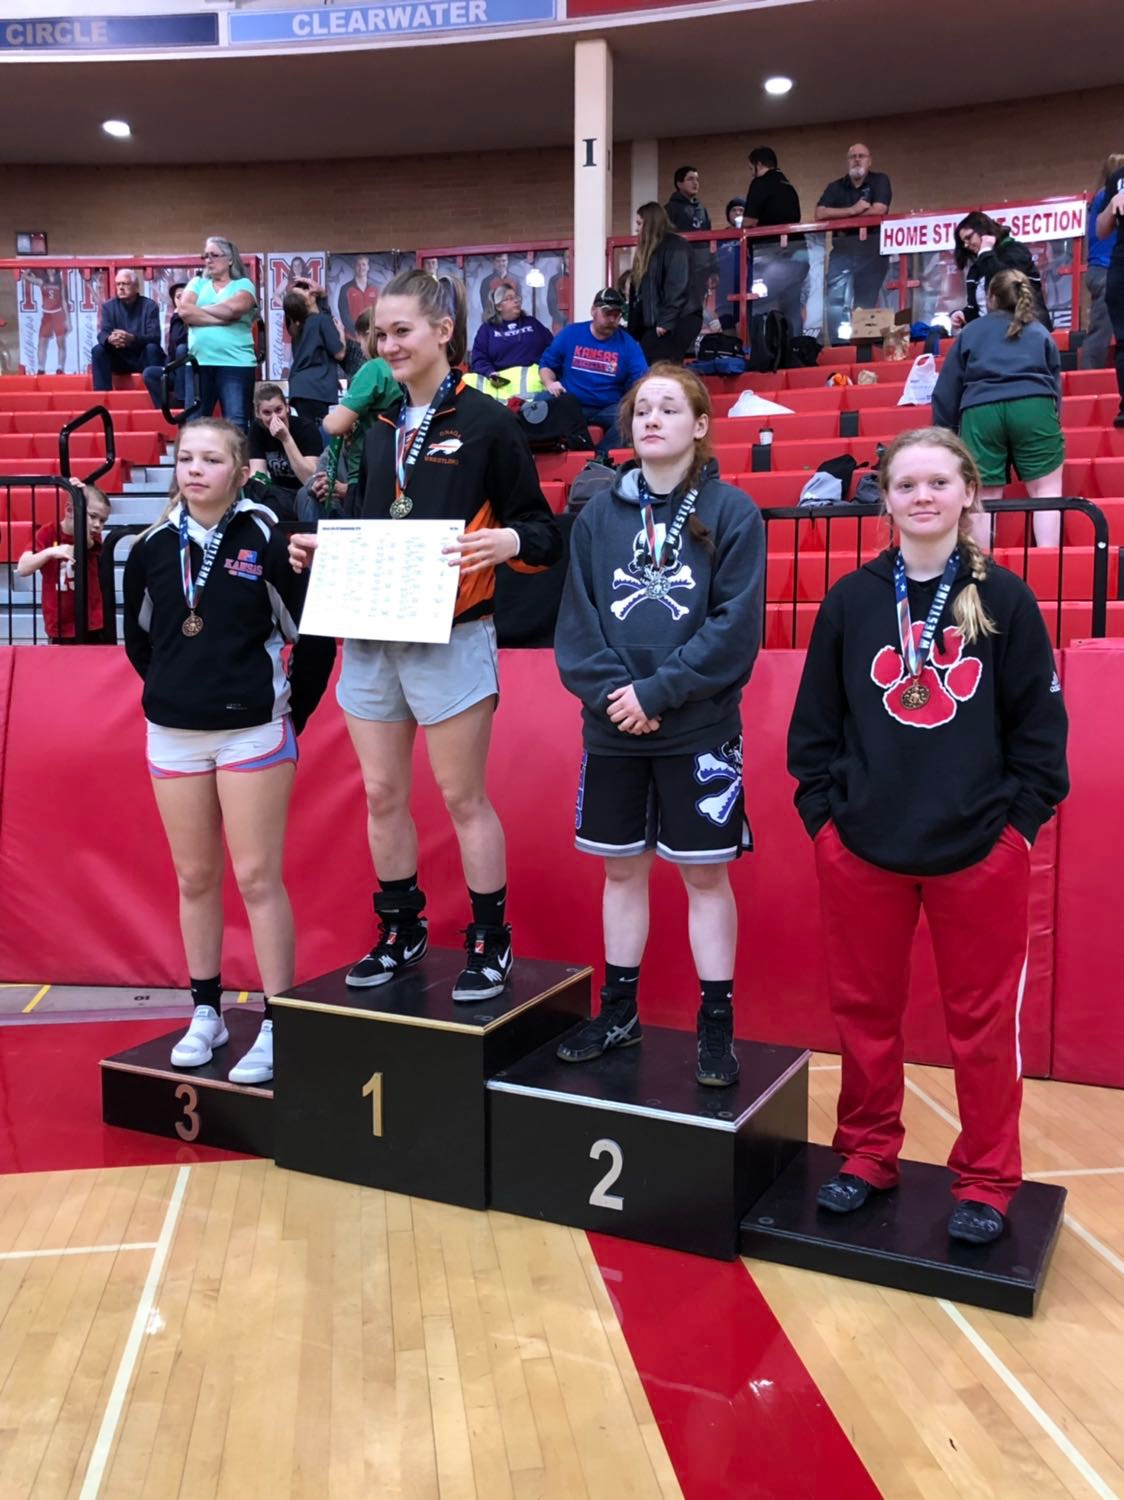 Sophomore Sara Lake said that she would definitely encourage more girls to join wrestling.